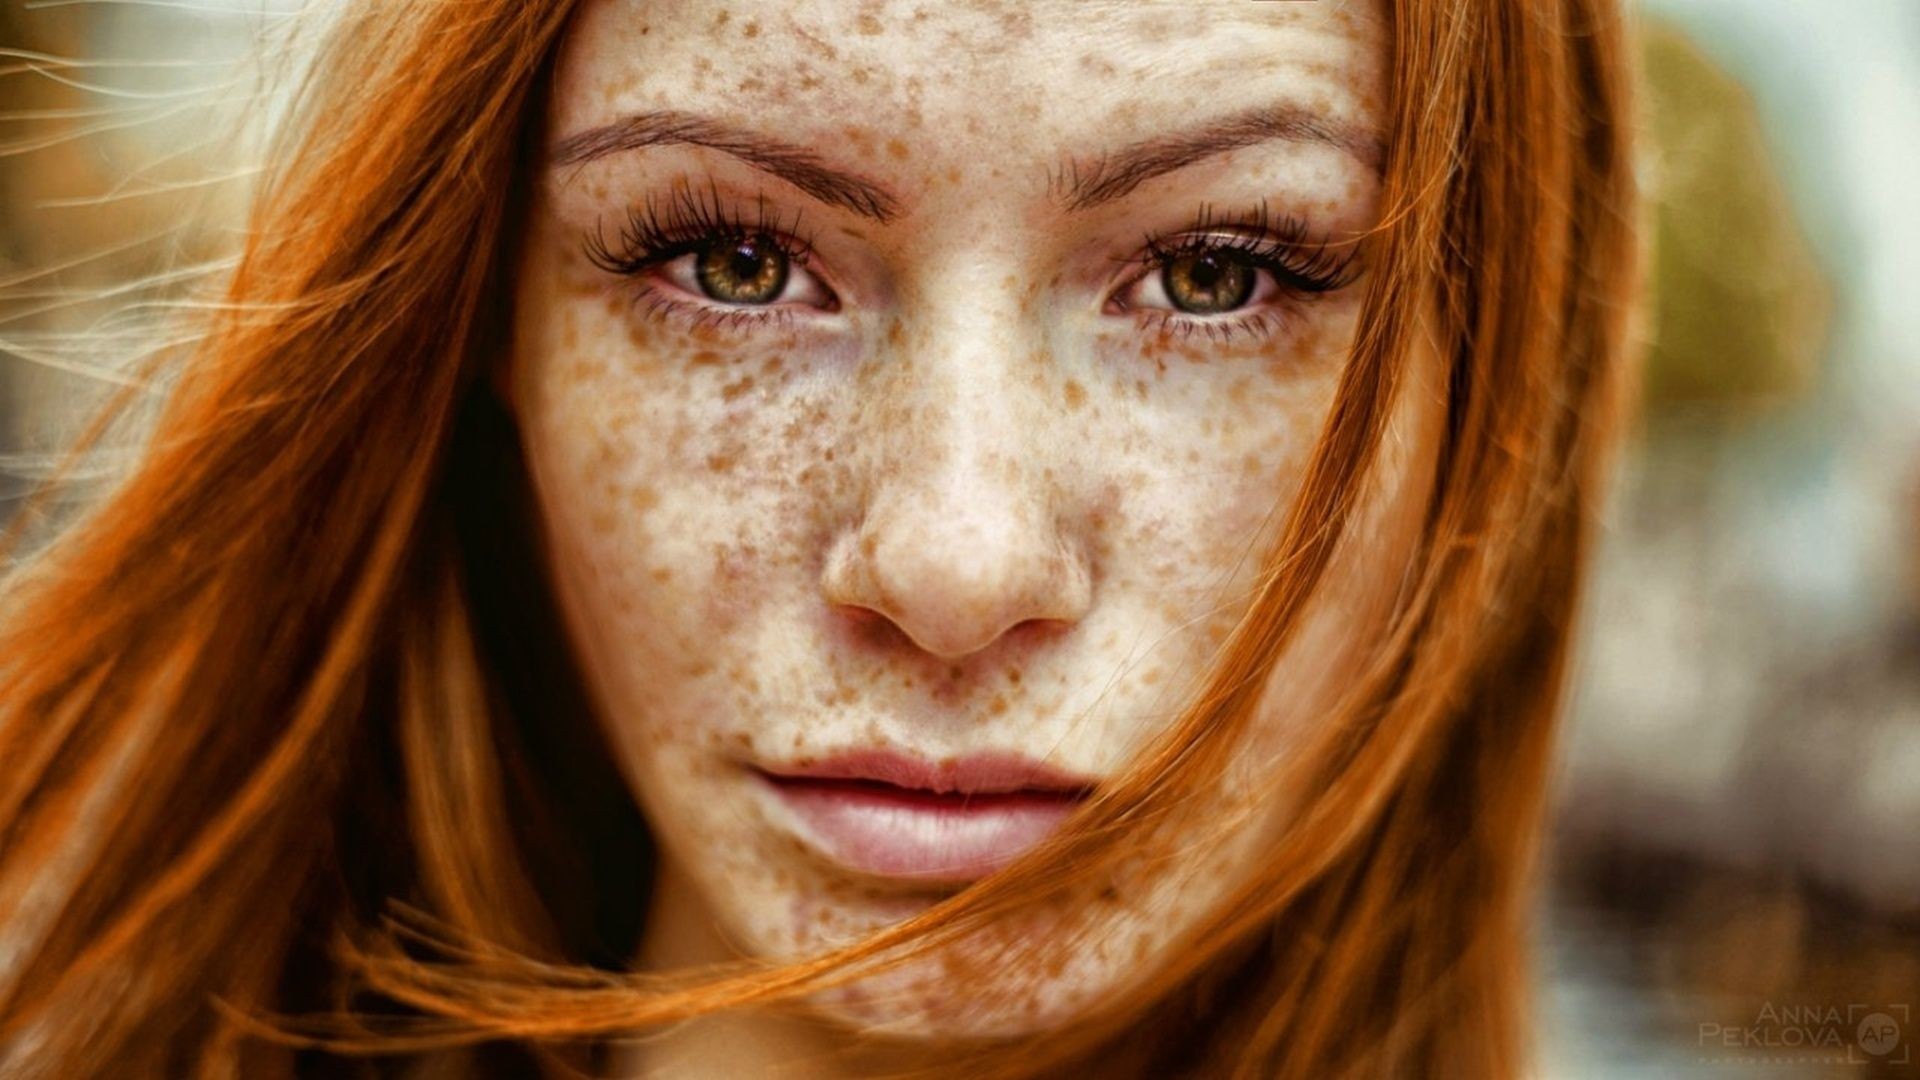 Freckled Woman | Freckled girl wallpapers and images - download wallpapers, pictures .